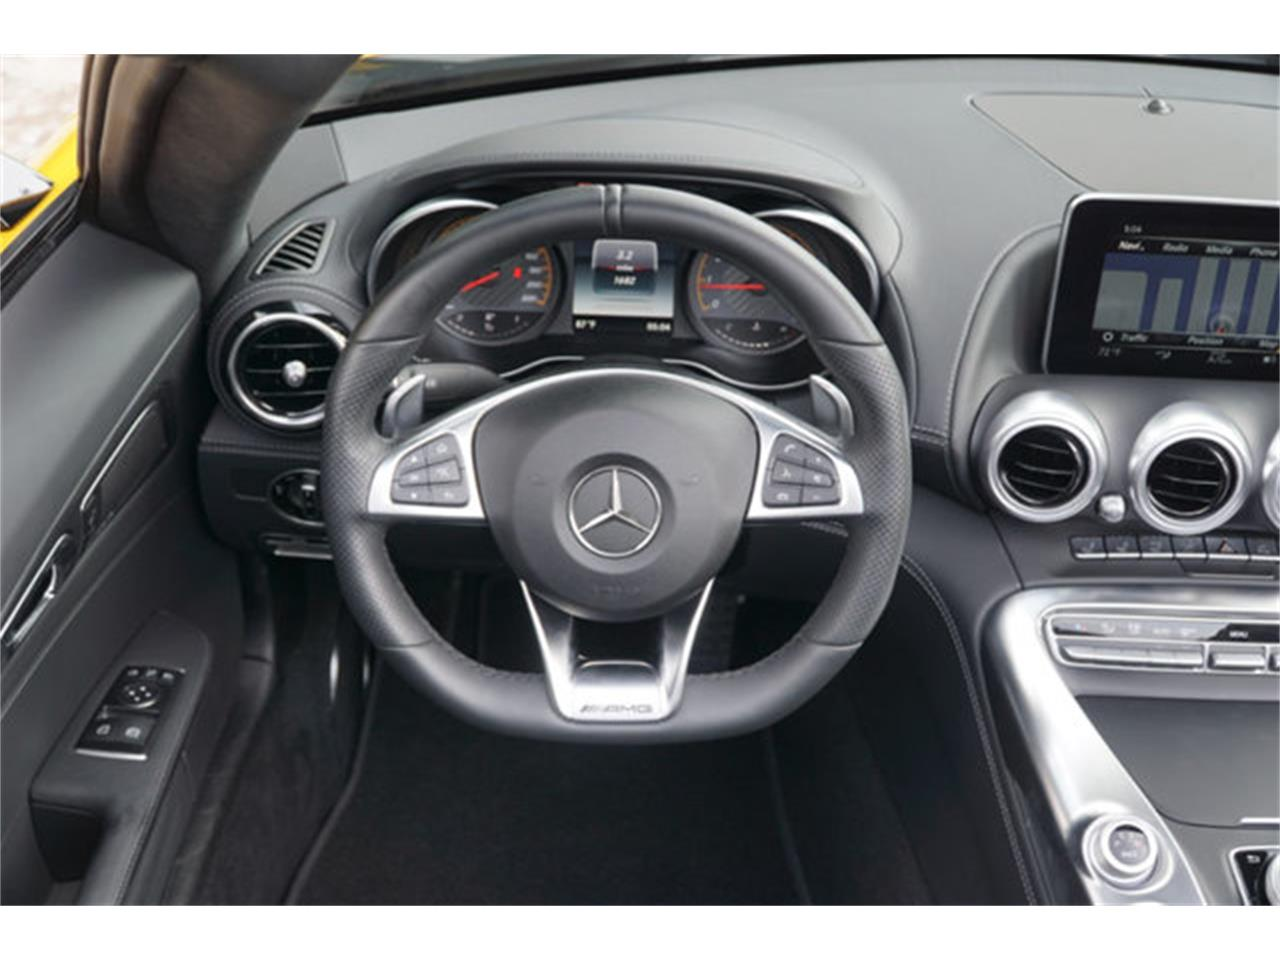 2018 Mercedes-Benz AMG (CC-1224375) for sale in Miami, Florida